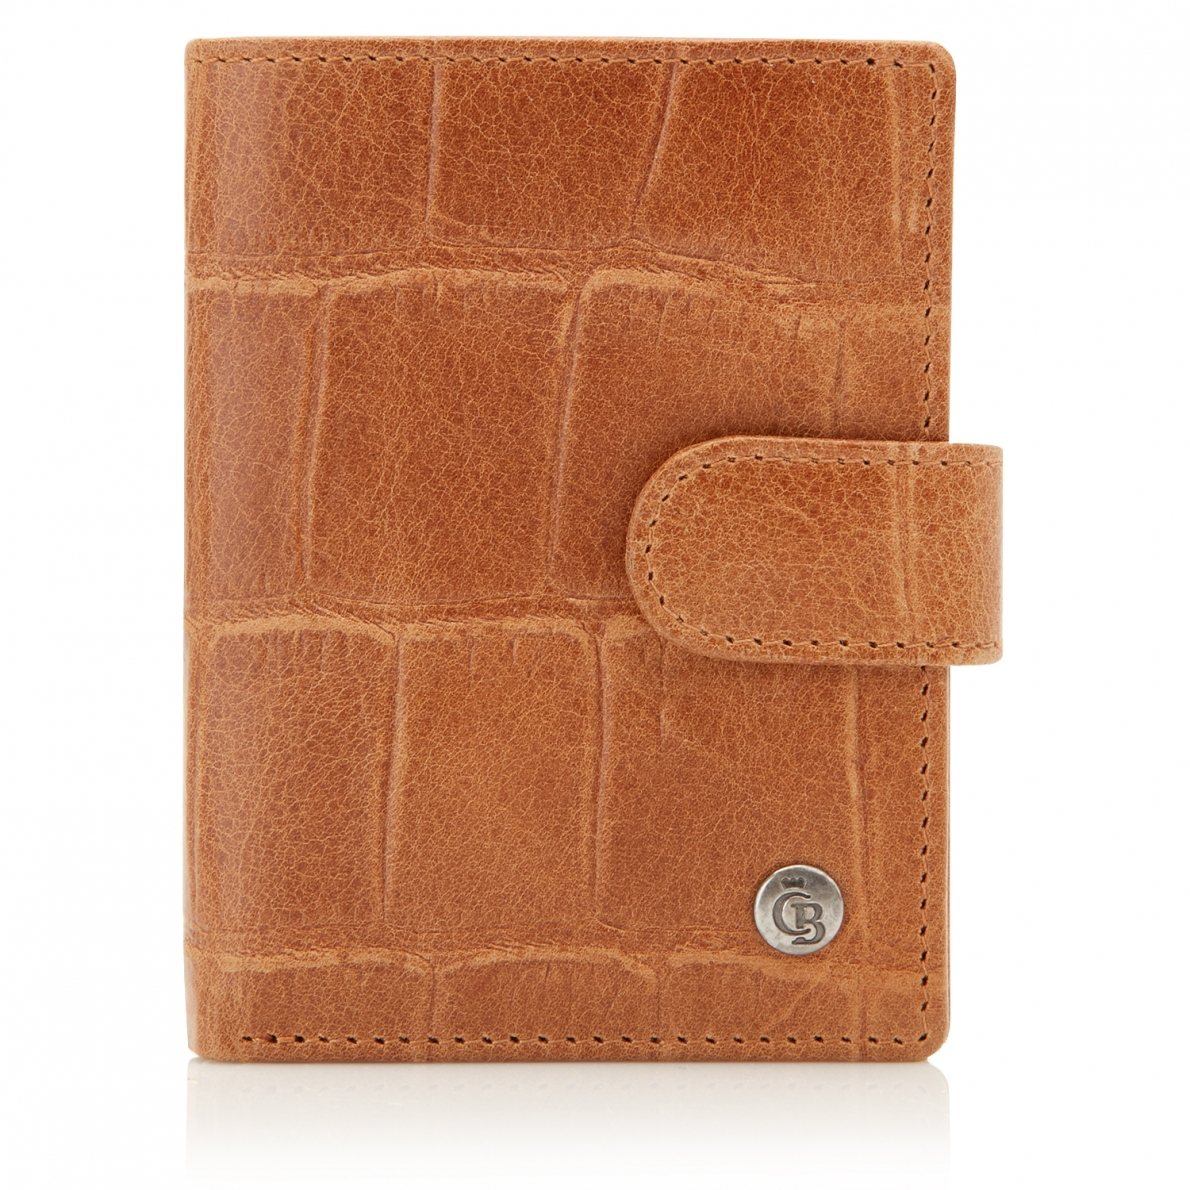 Castelijn & Beerens Cocco Mini Wallet Light Brown